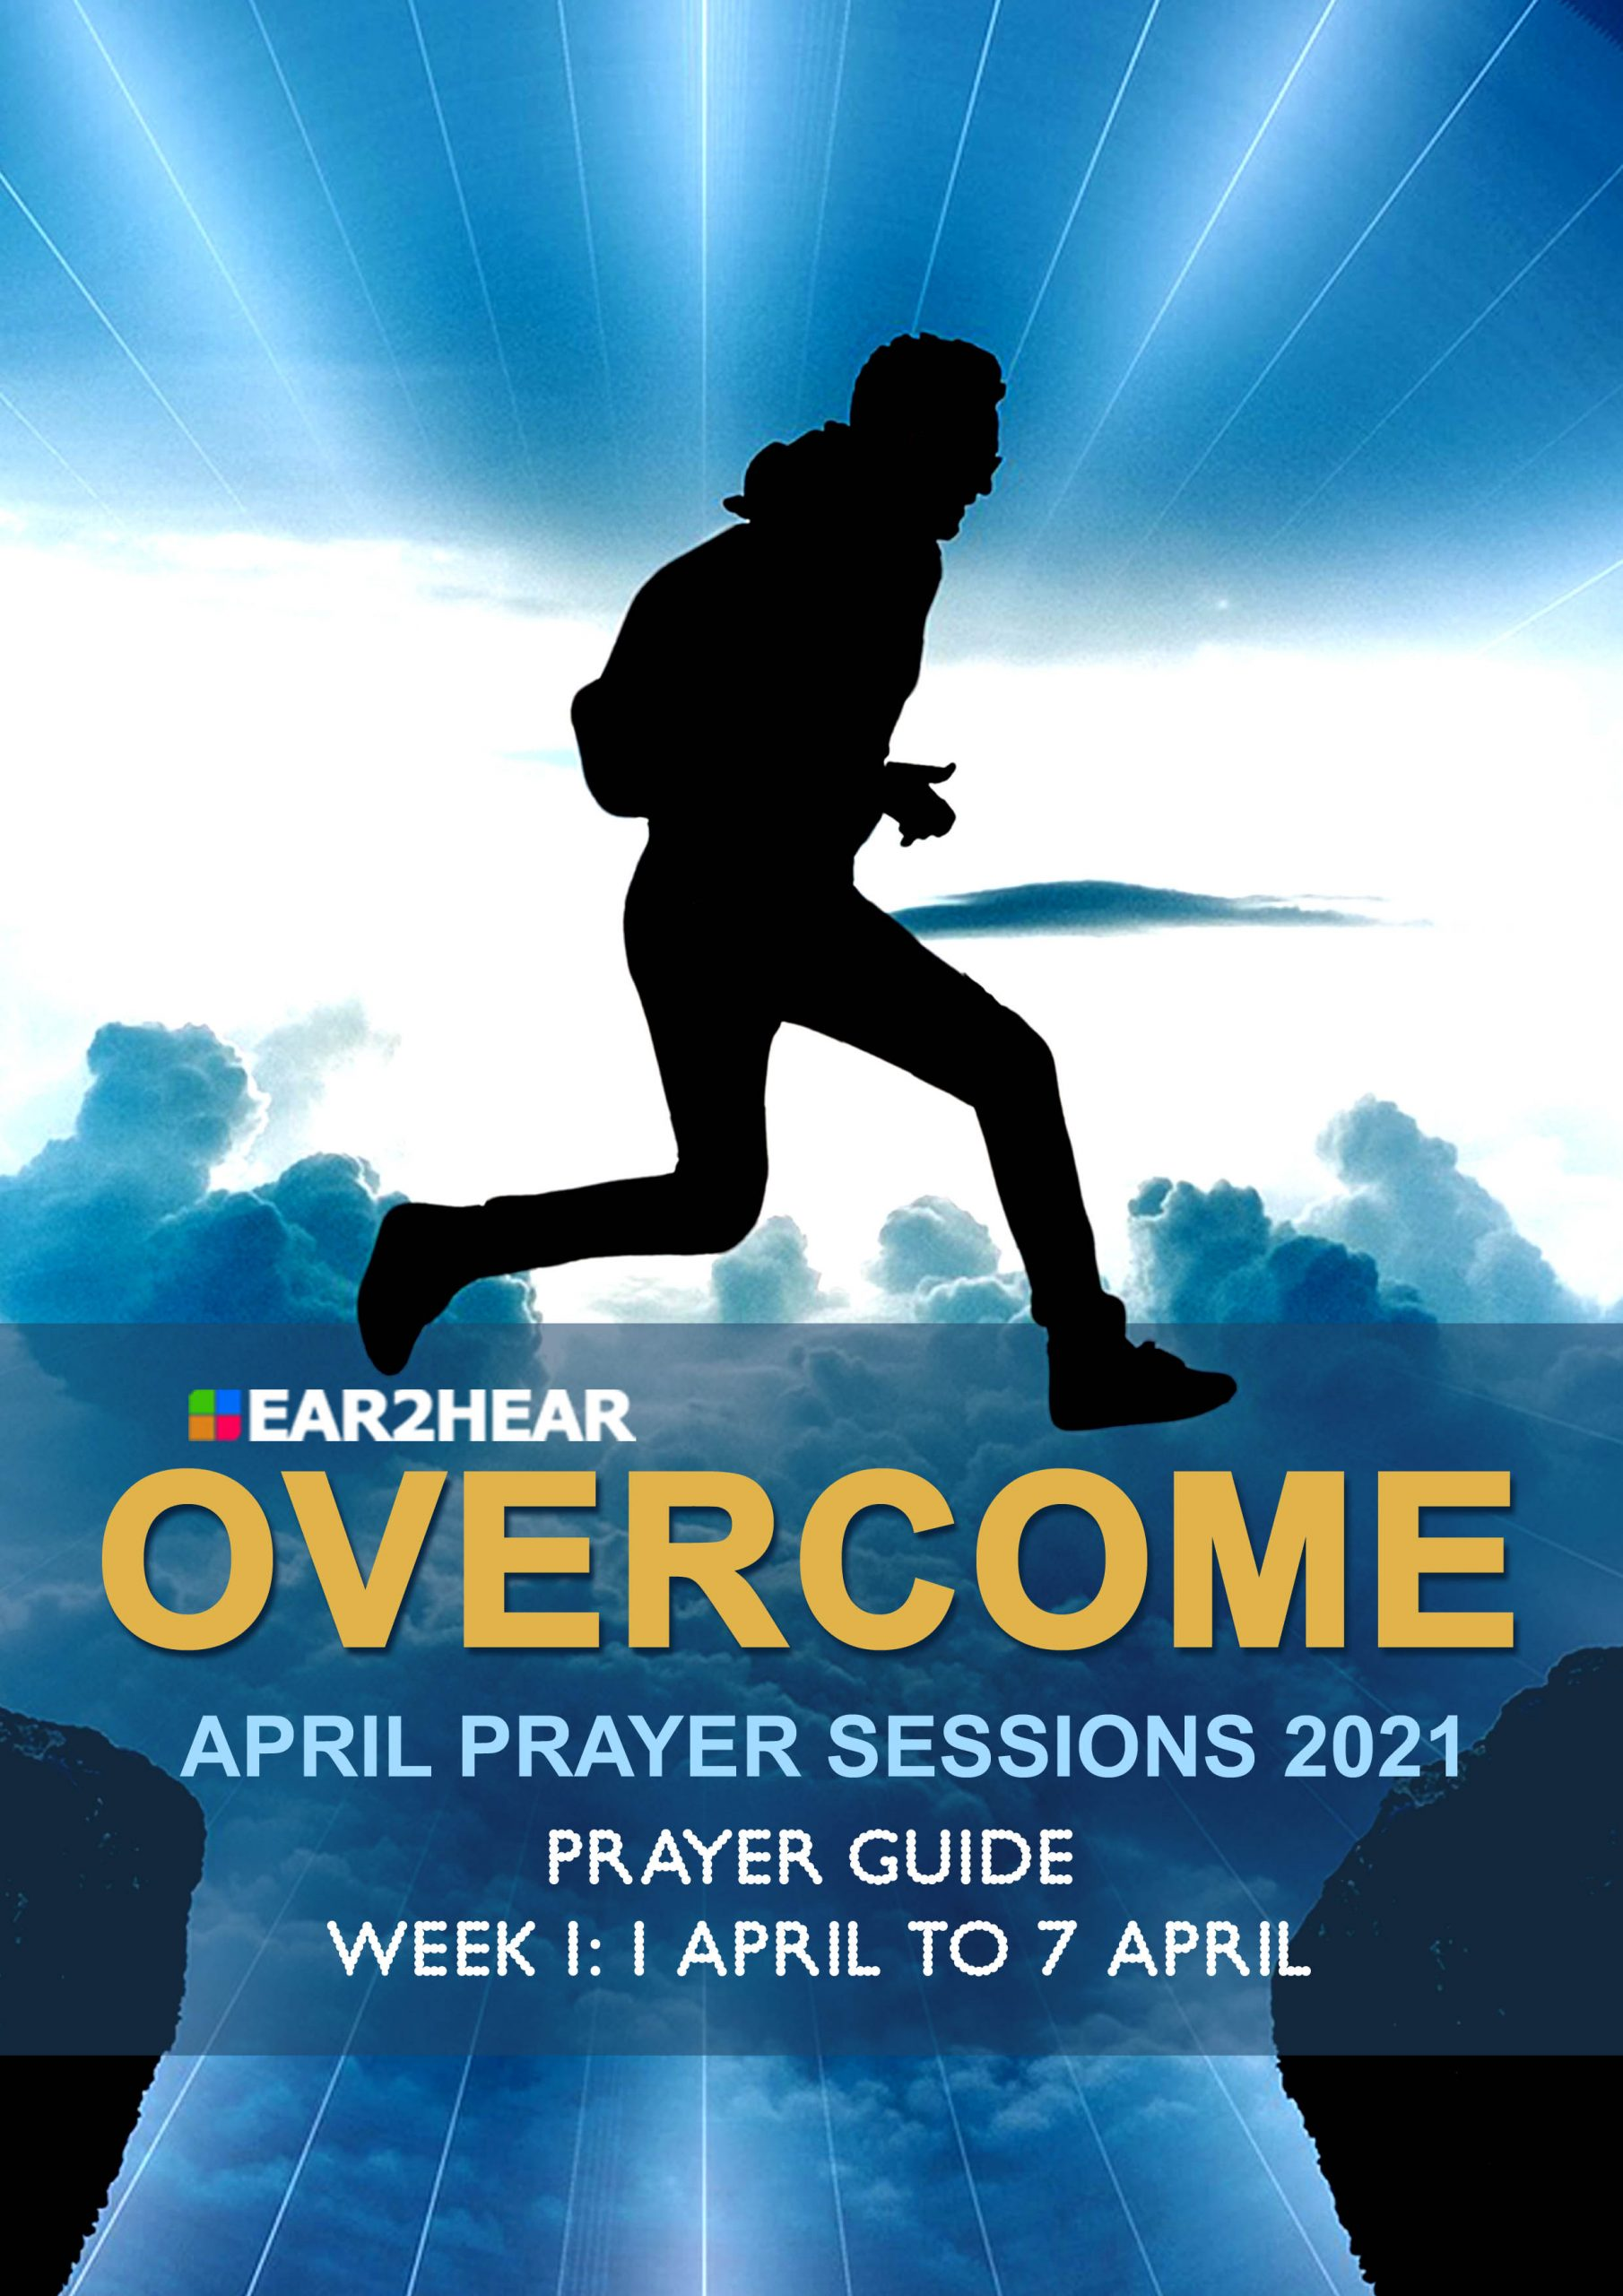 Click / press on image to download week 1  of the prayer guide